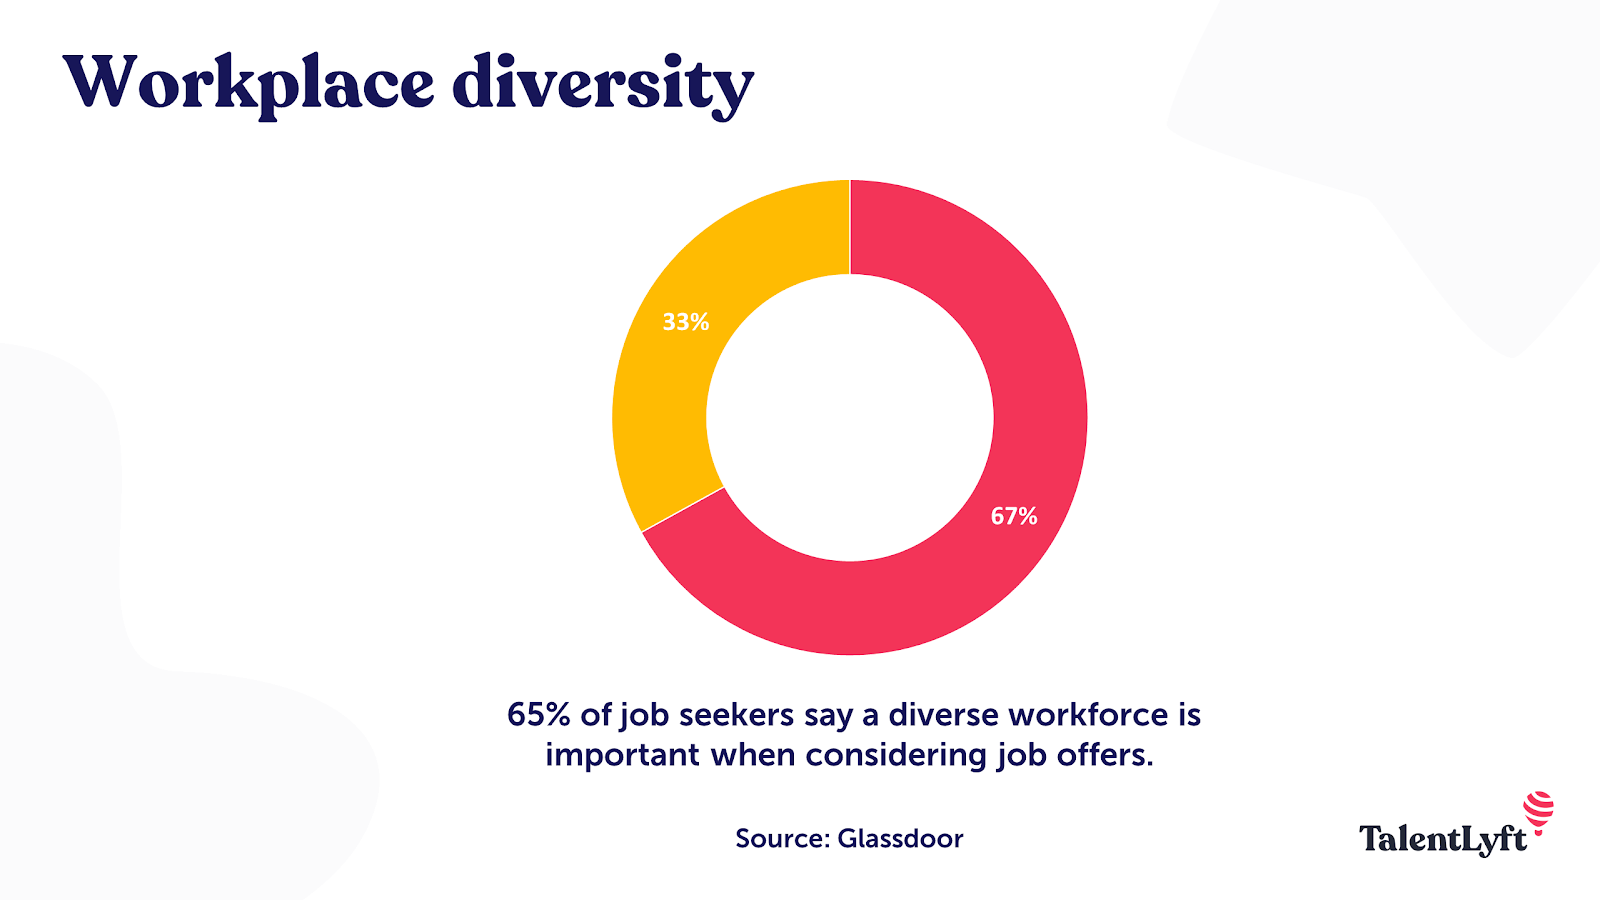 Importance of workplace diversity for hiring